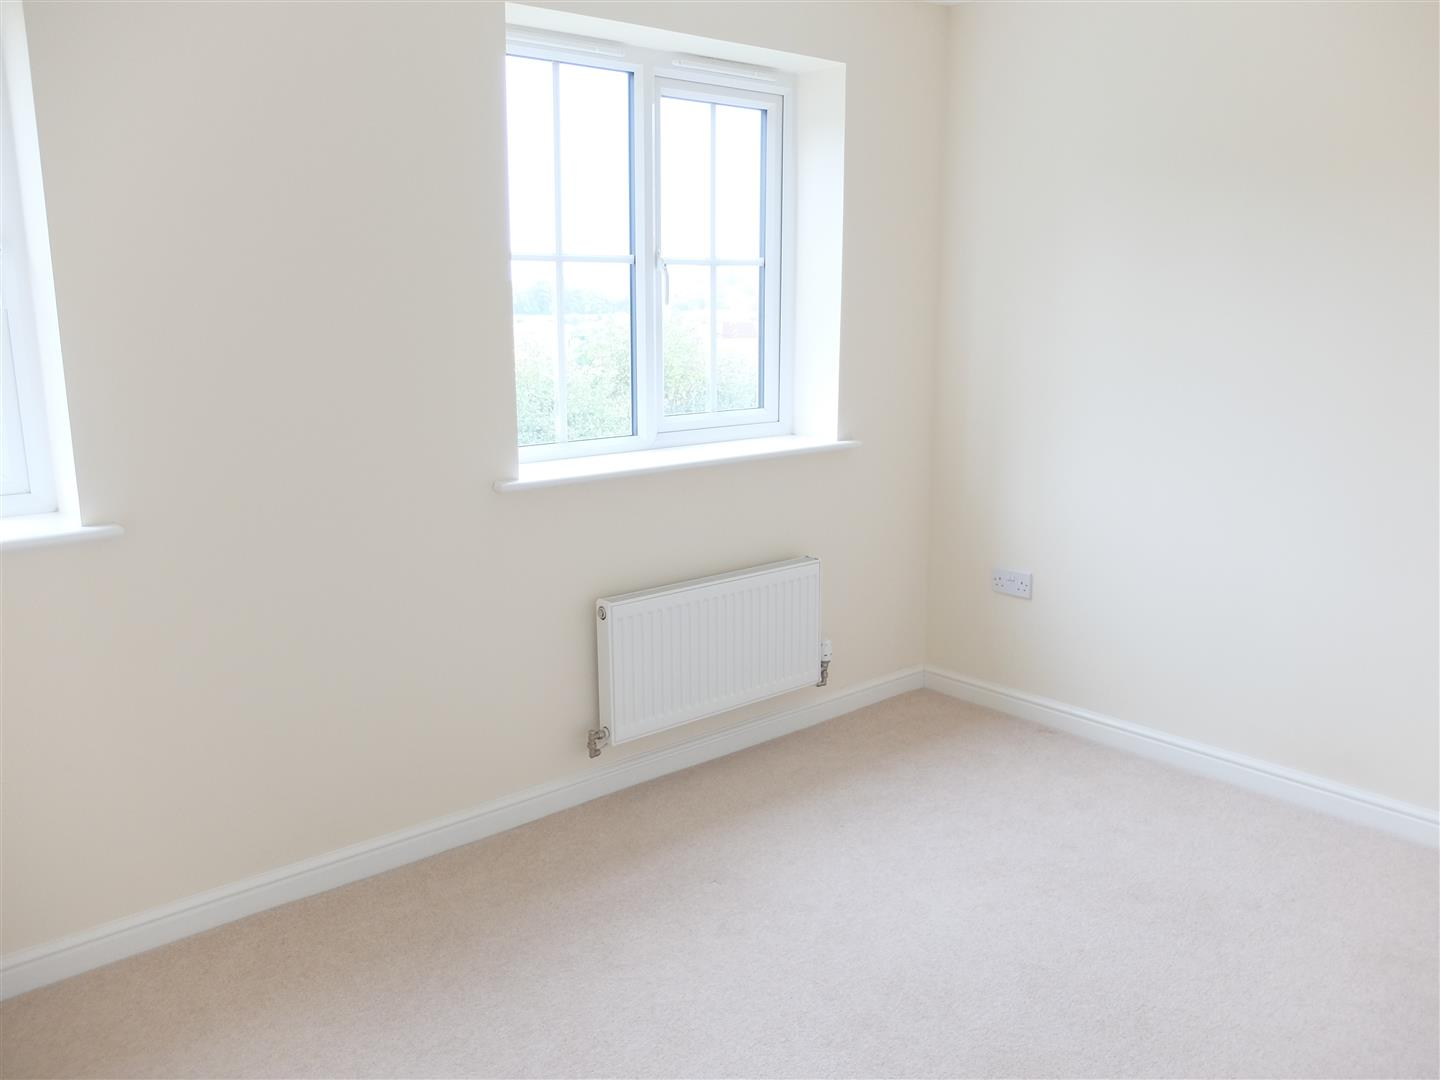 9 Barley Edge Carlisle 3 Bedrooms House - End Terrace For Sale 154,950